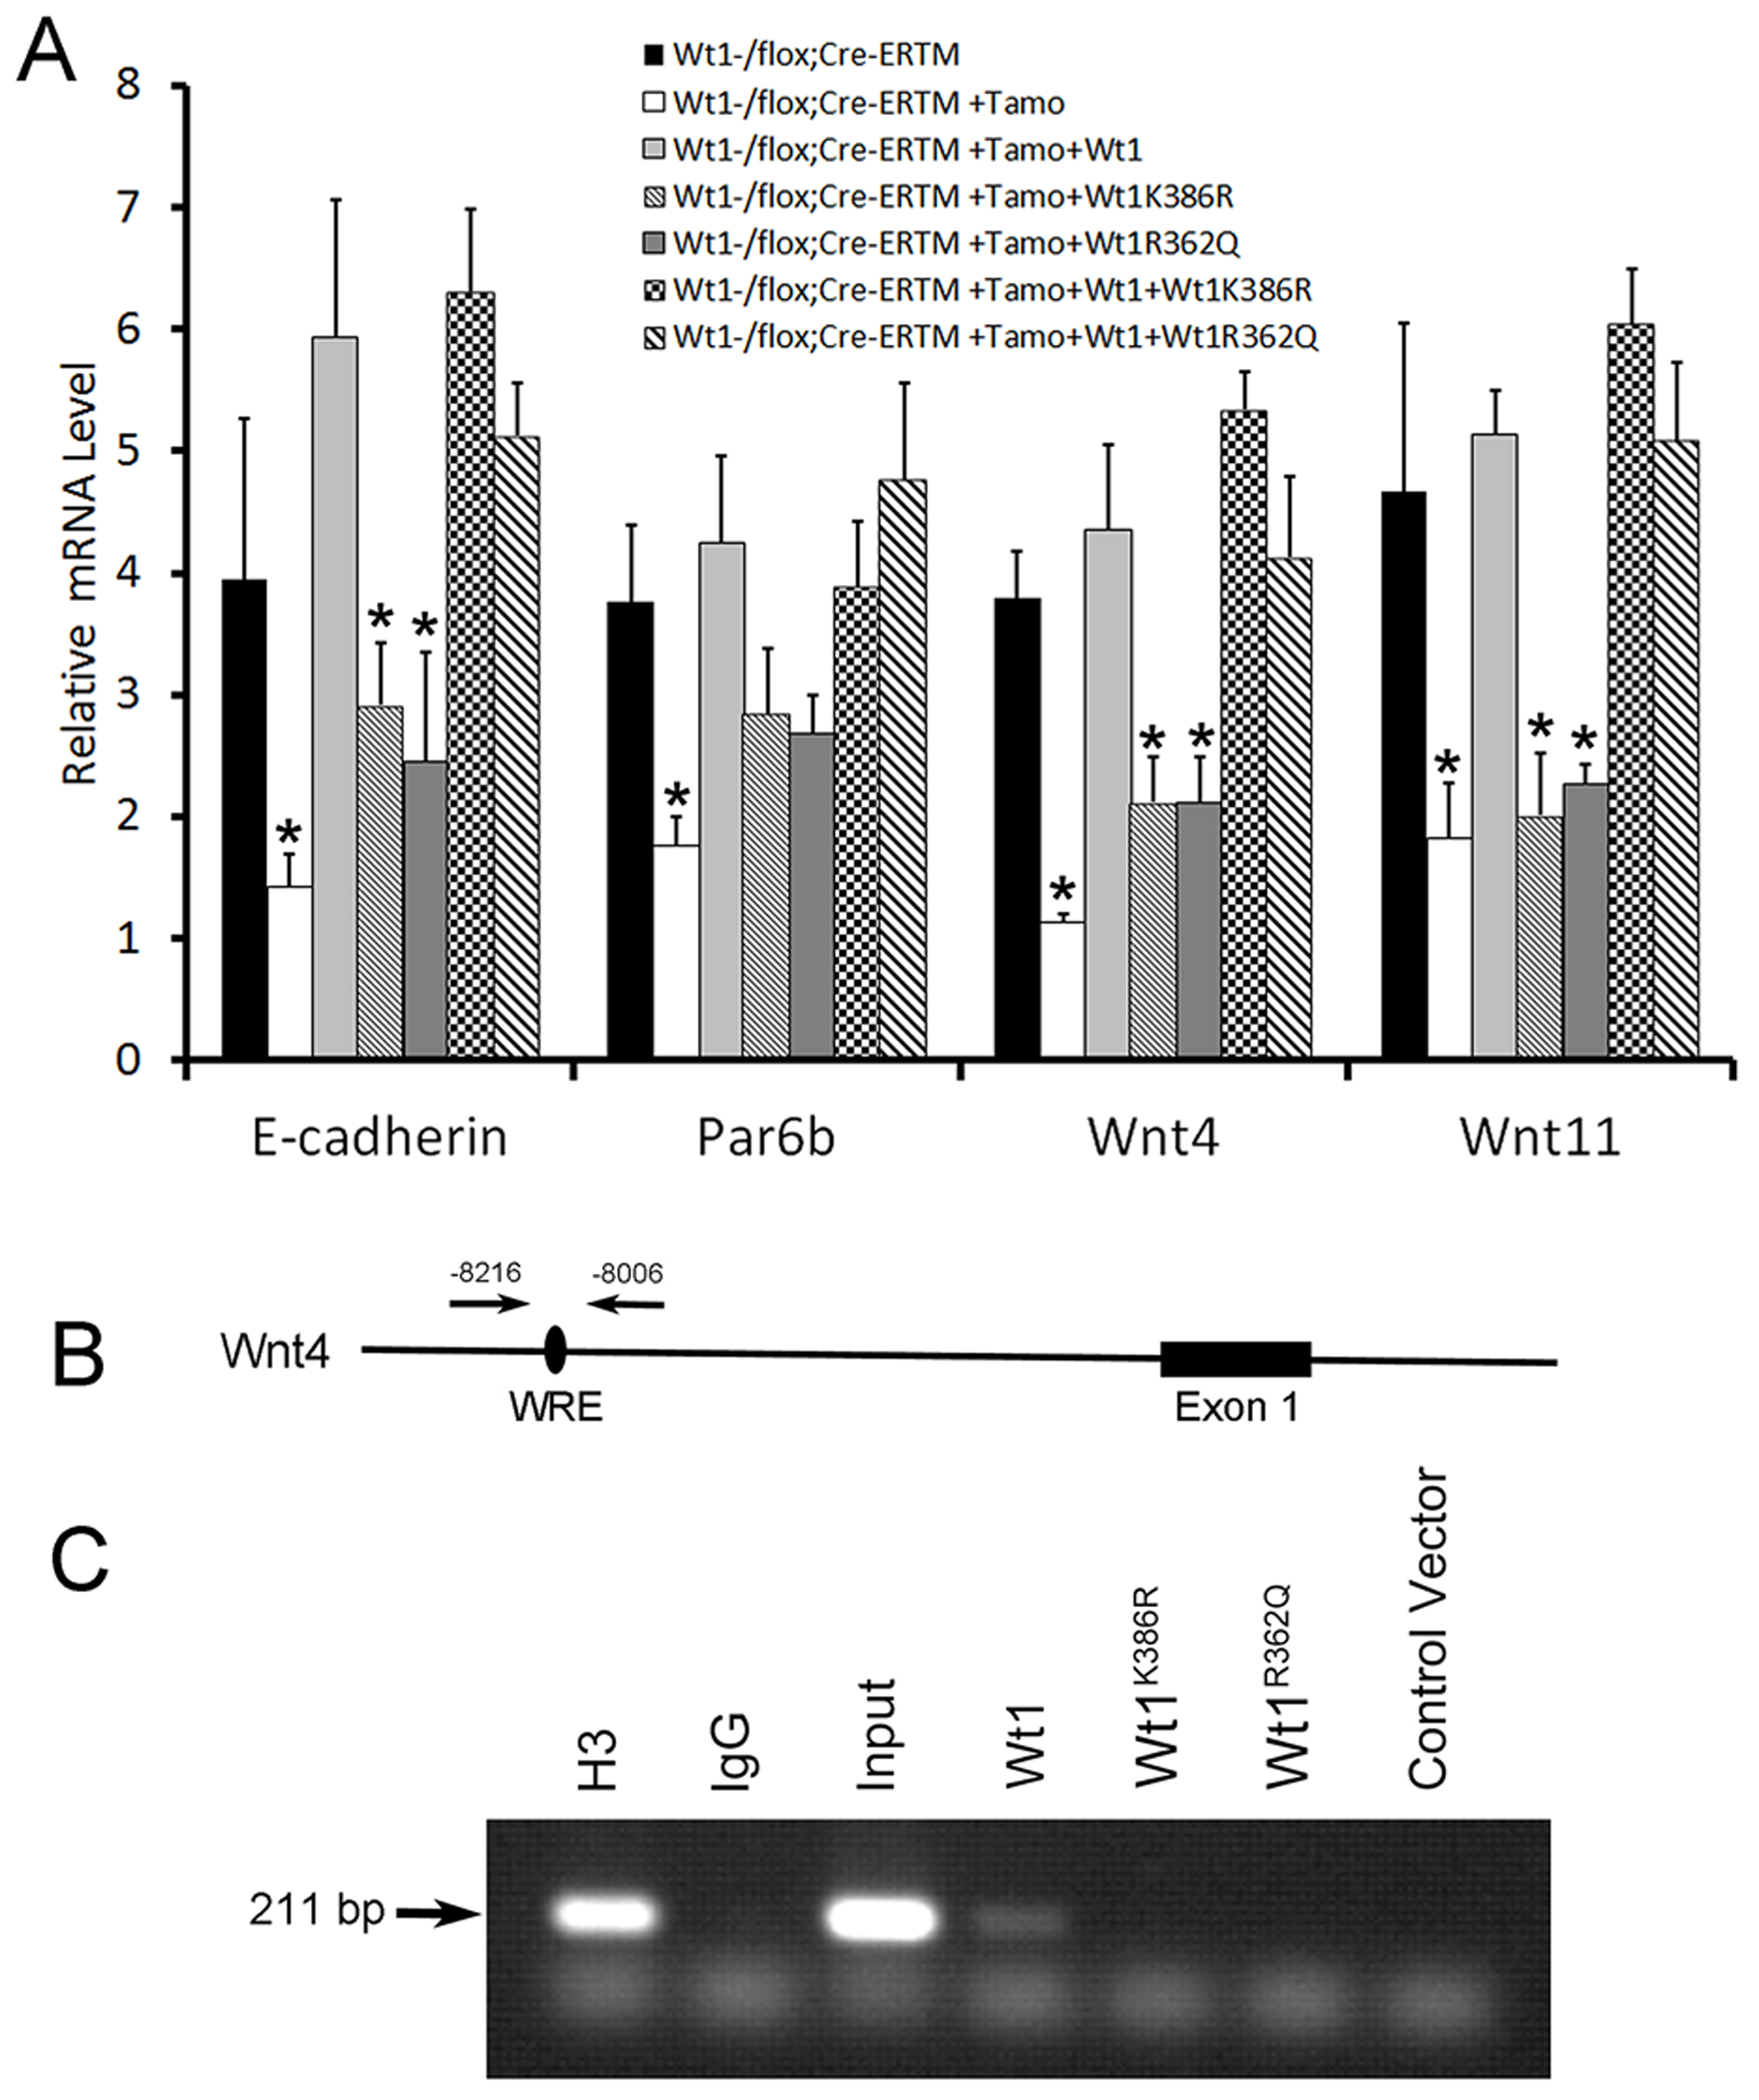 Functional analysis of WT1 mutations detected in NOA patients.